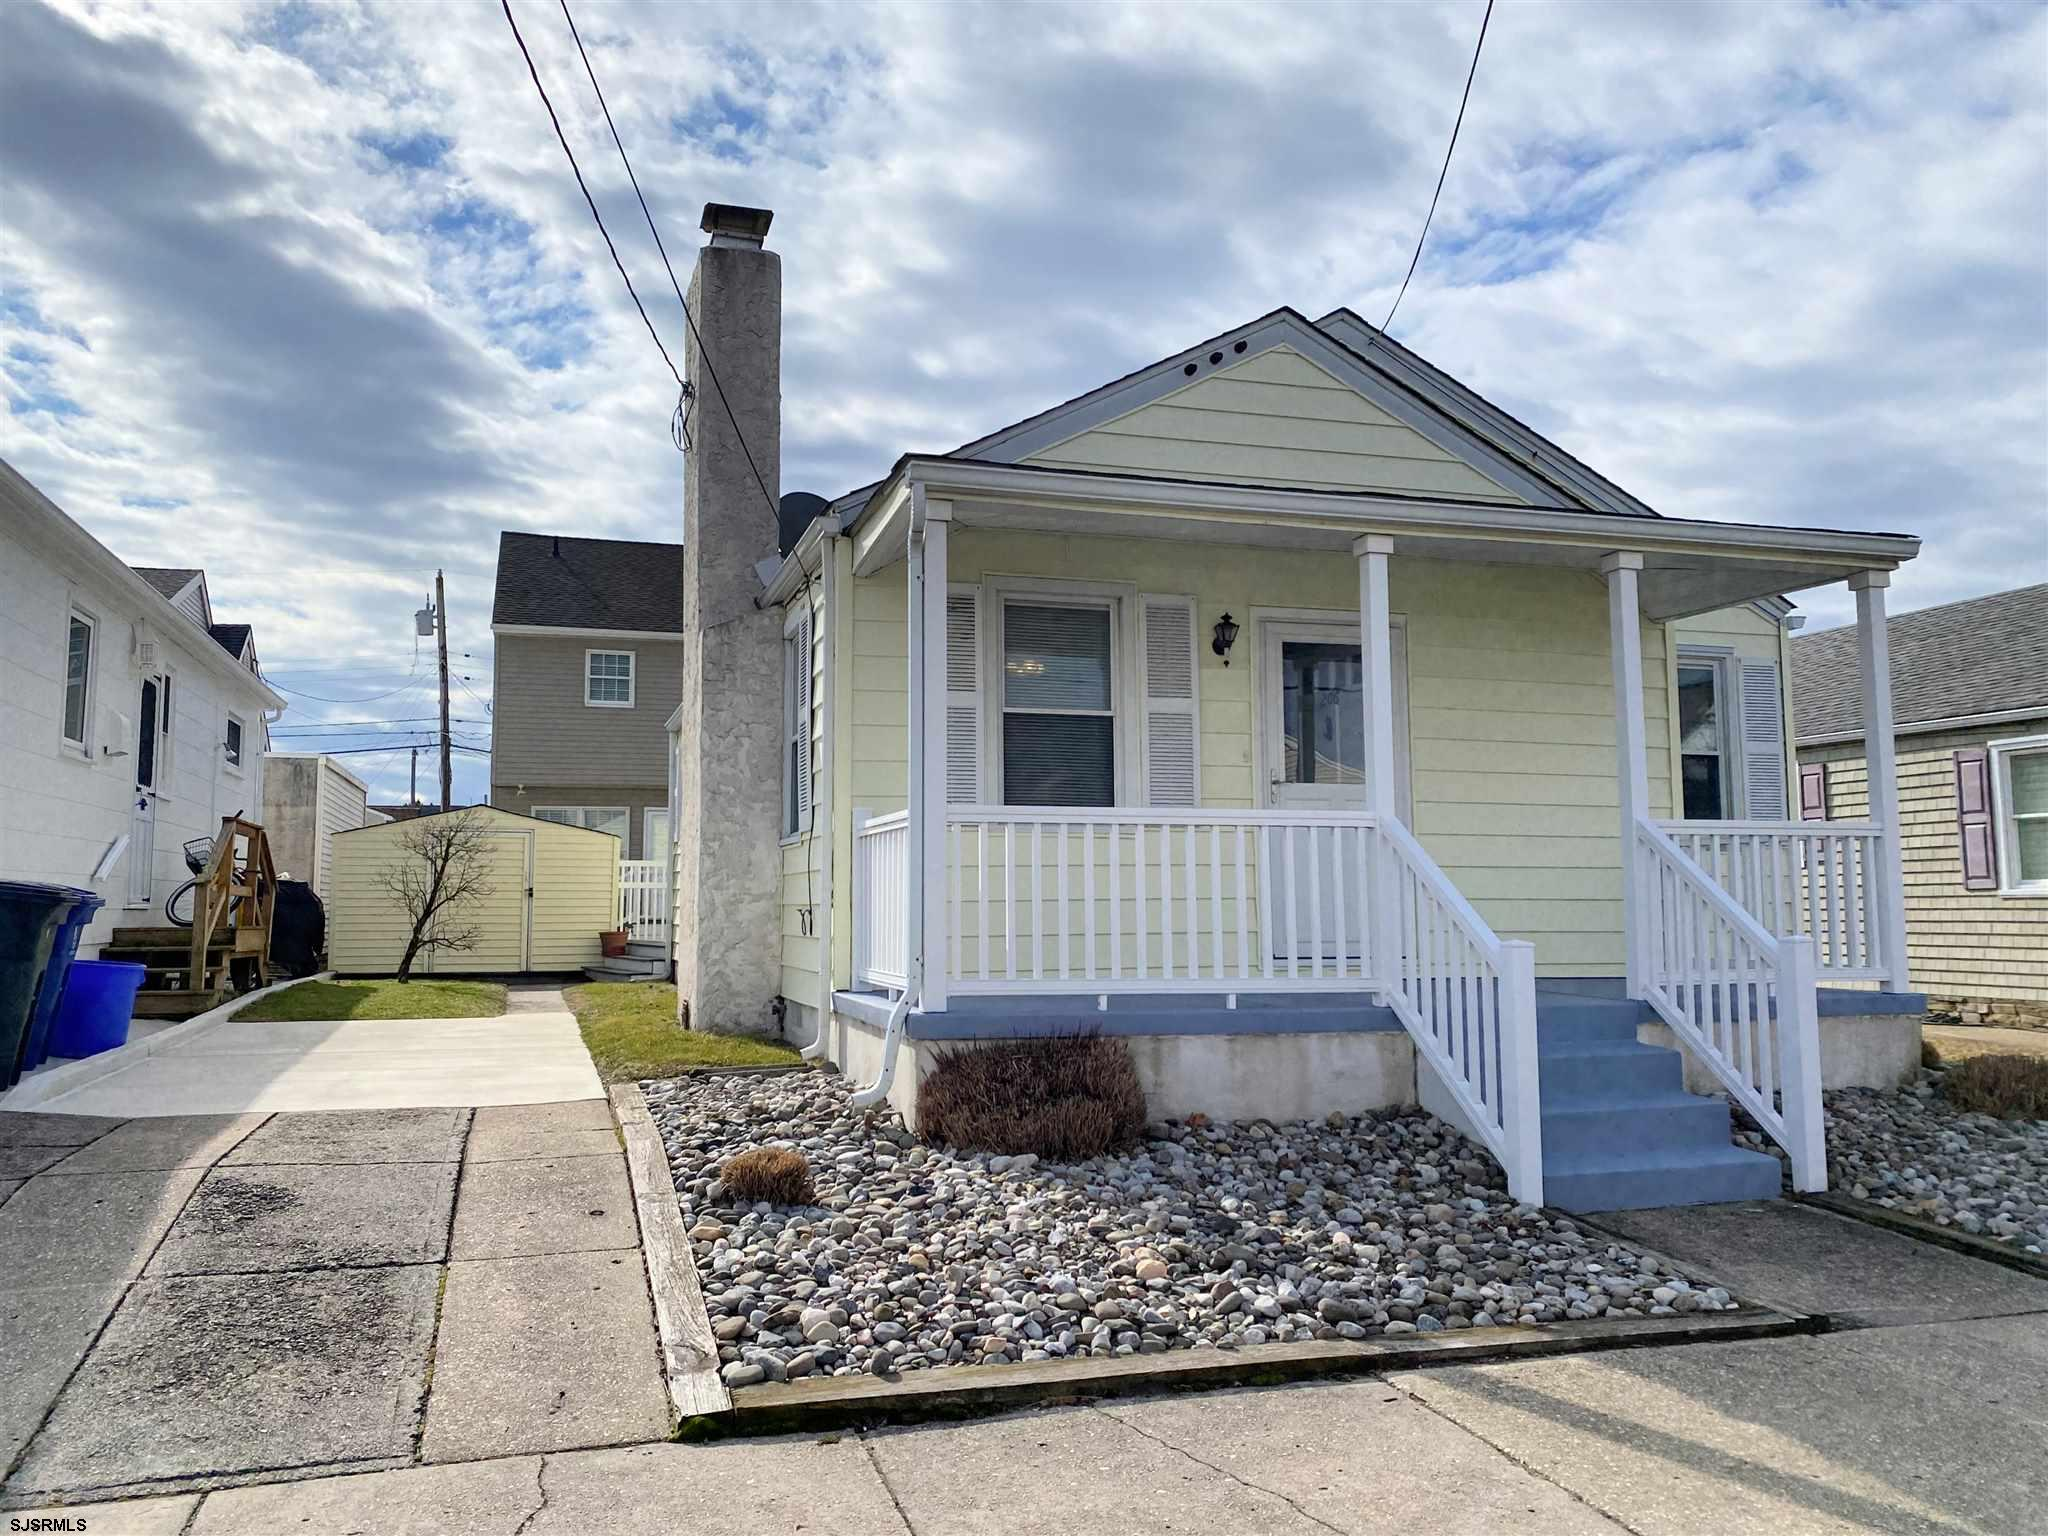 THER PERFECT SHORE HOME! Immaculate and well-maintained 2 bedroom, 2 full bath home located just ste